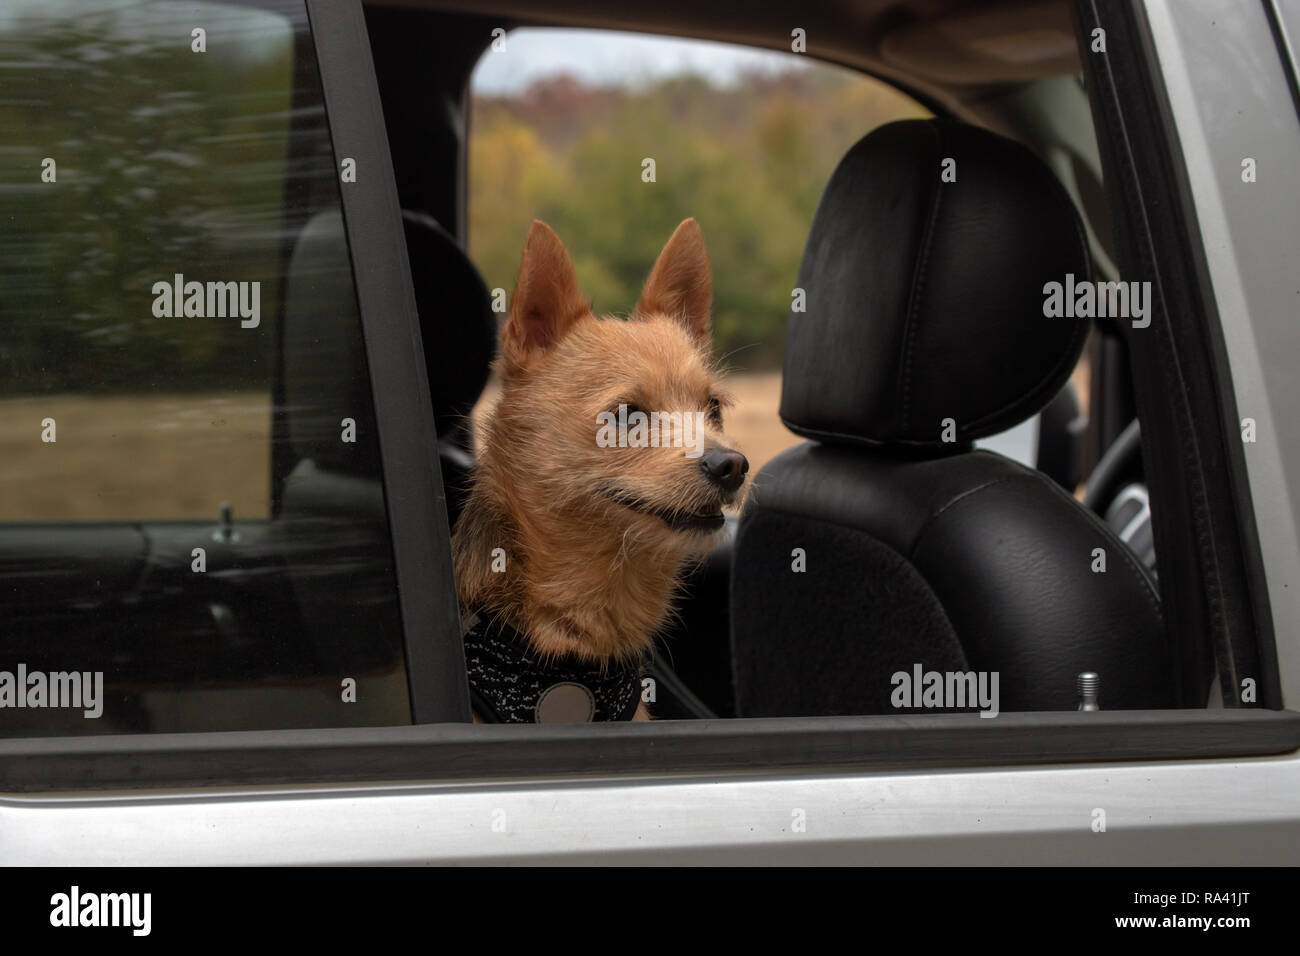 A puppy that loves his car rides. Bokeh background. - Stock Image